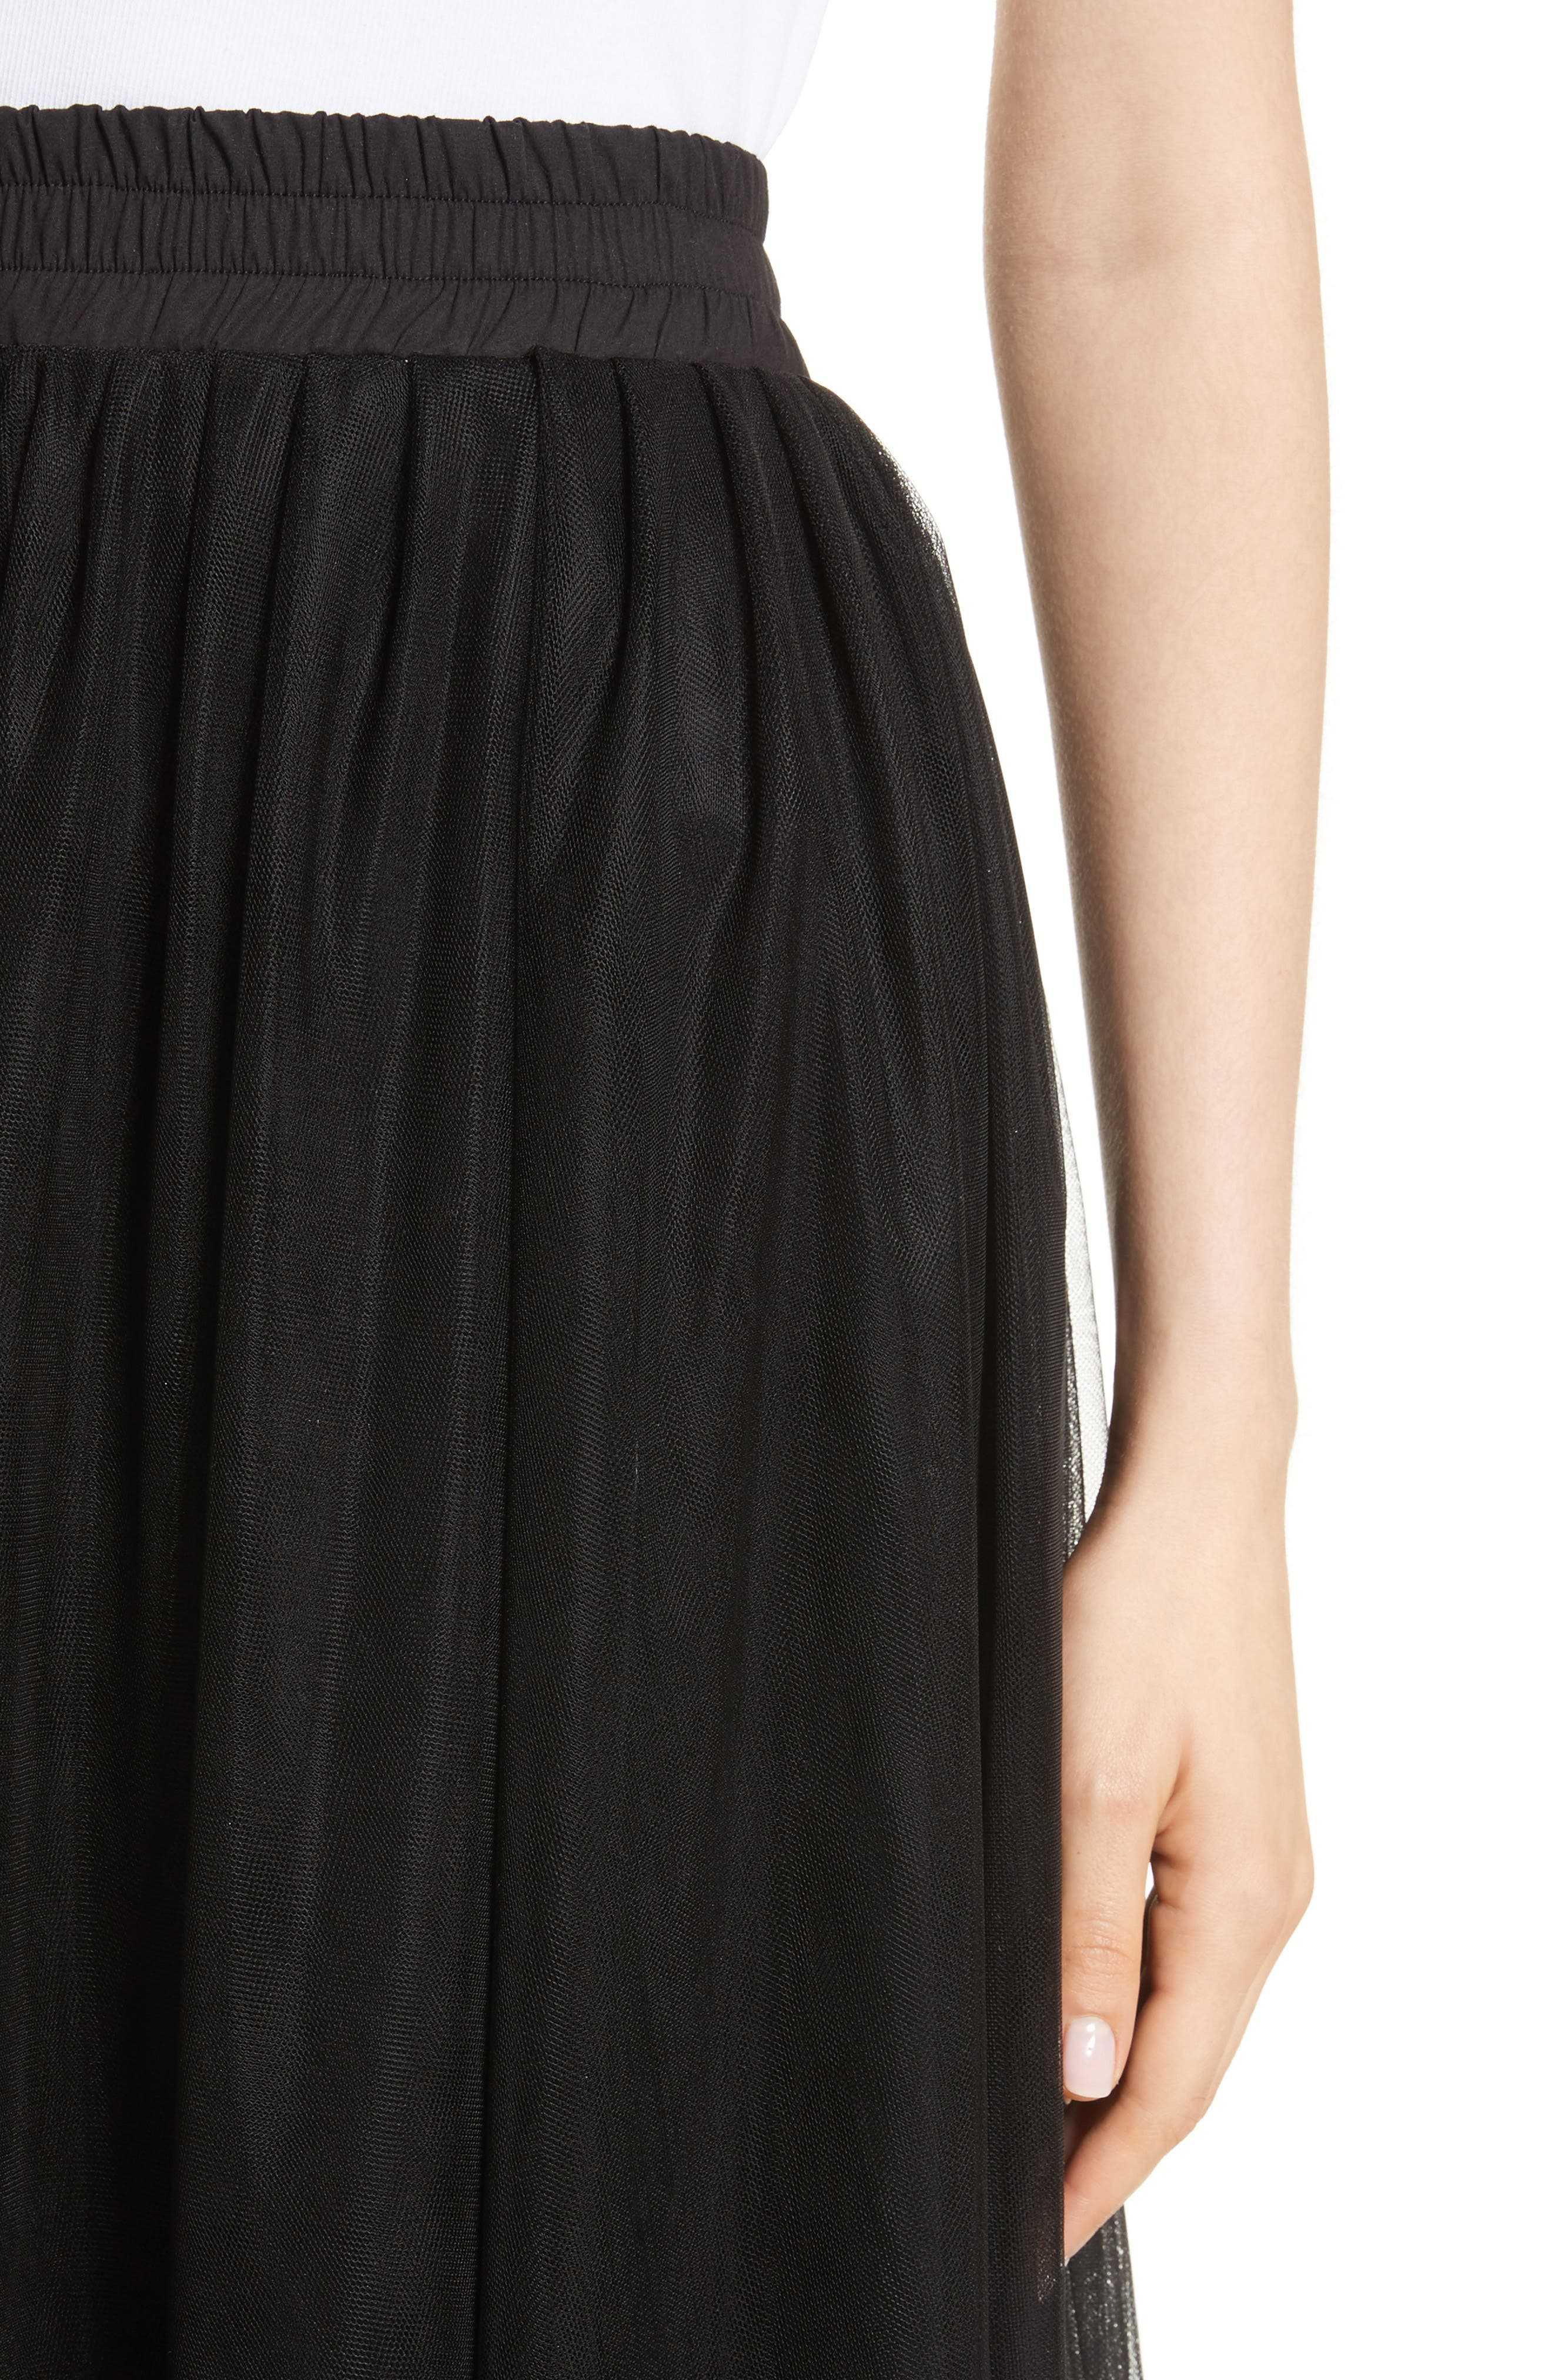 Tulle Midi Skirt,                             Alternate thumbnail 4, color,                             001